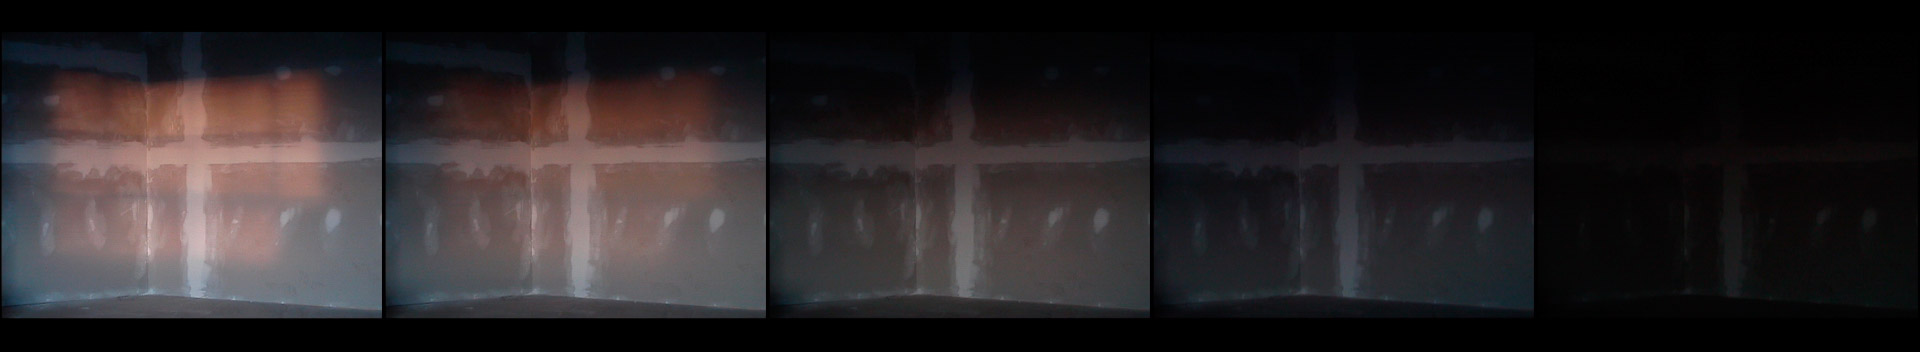 stills from 12 minute video loop